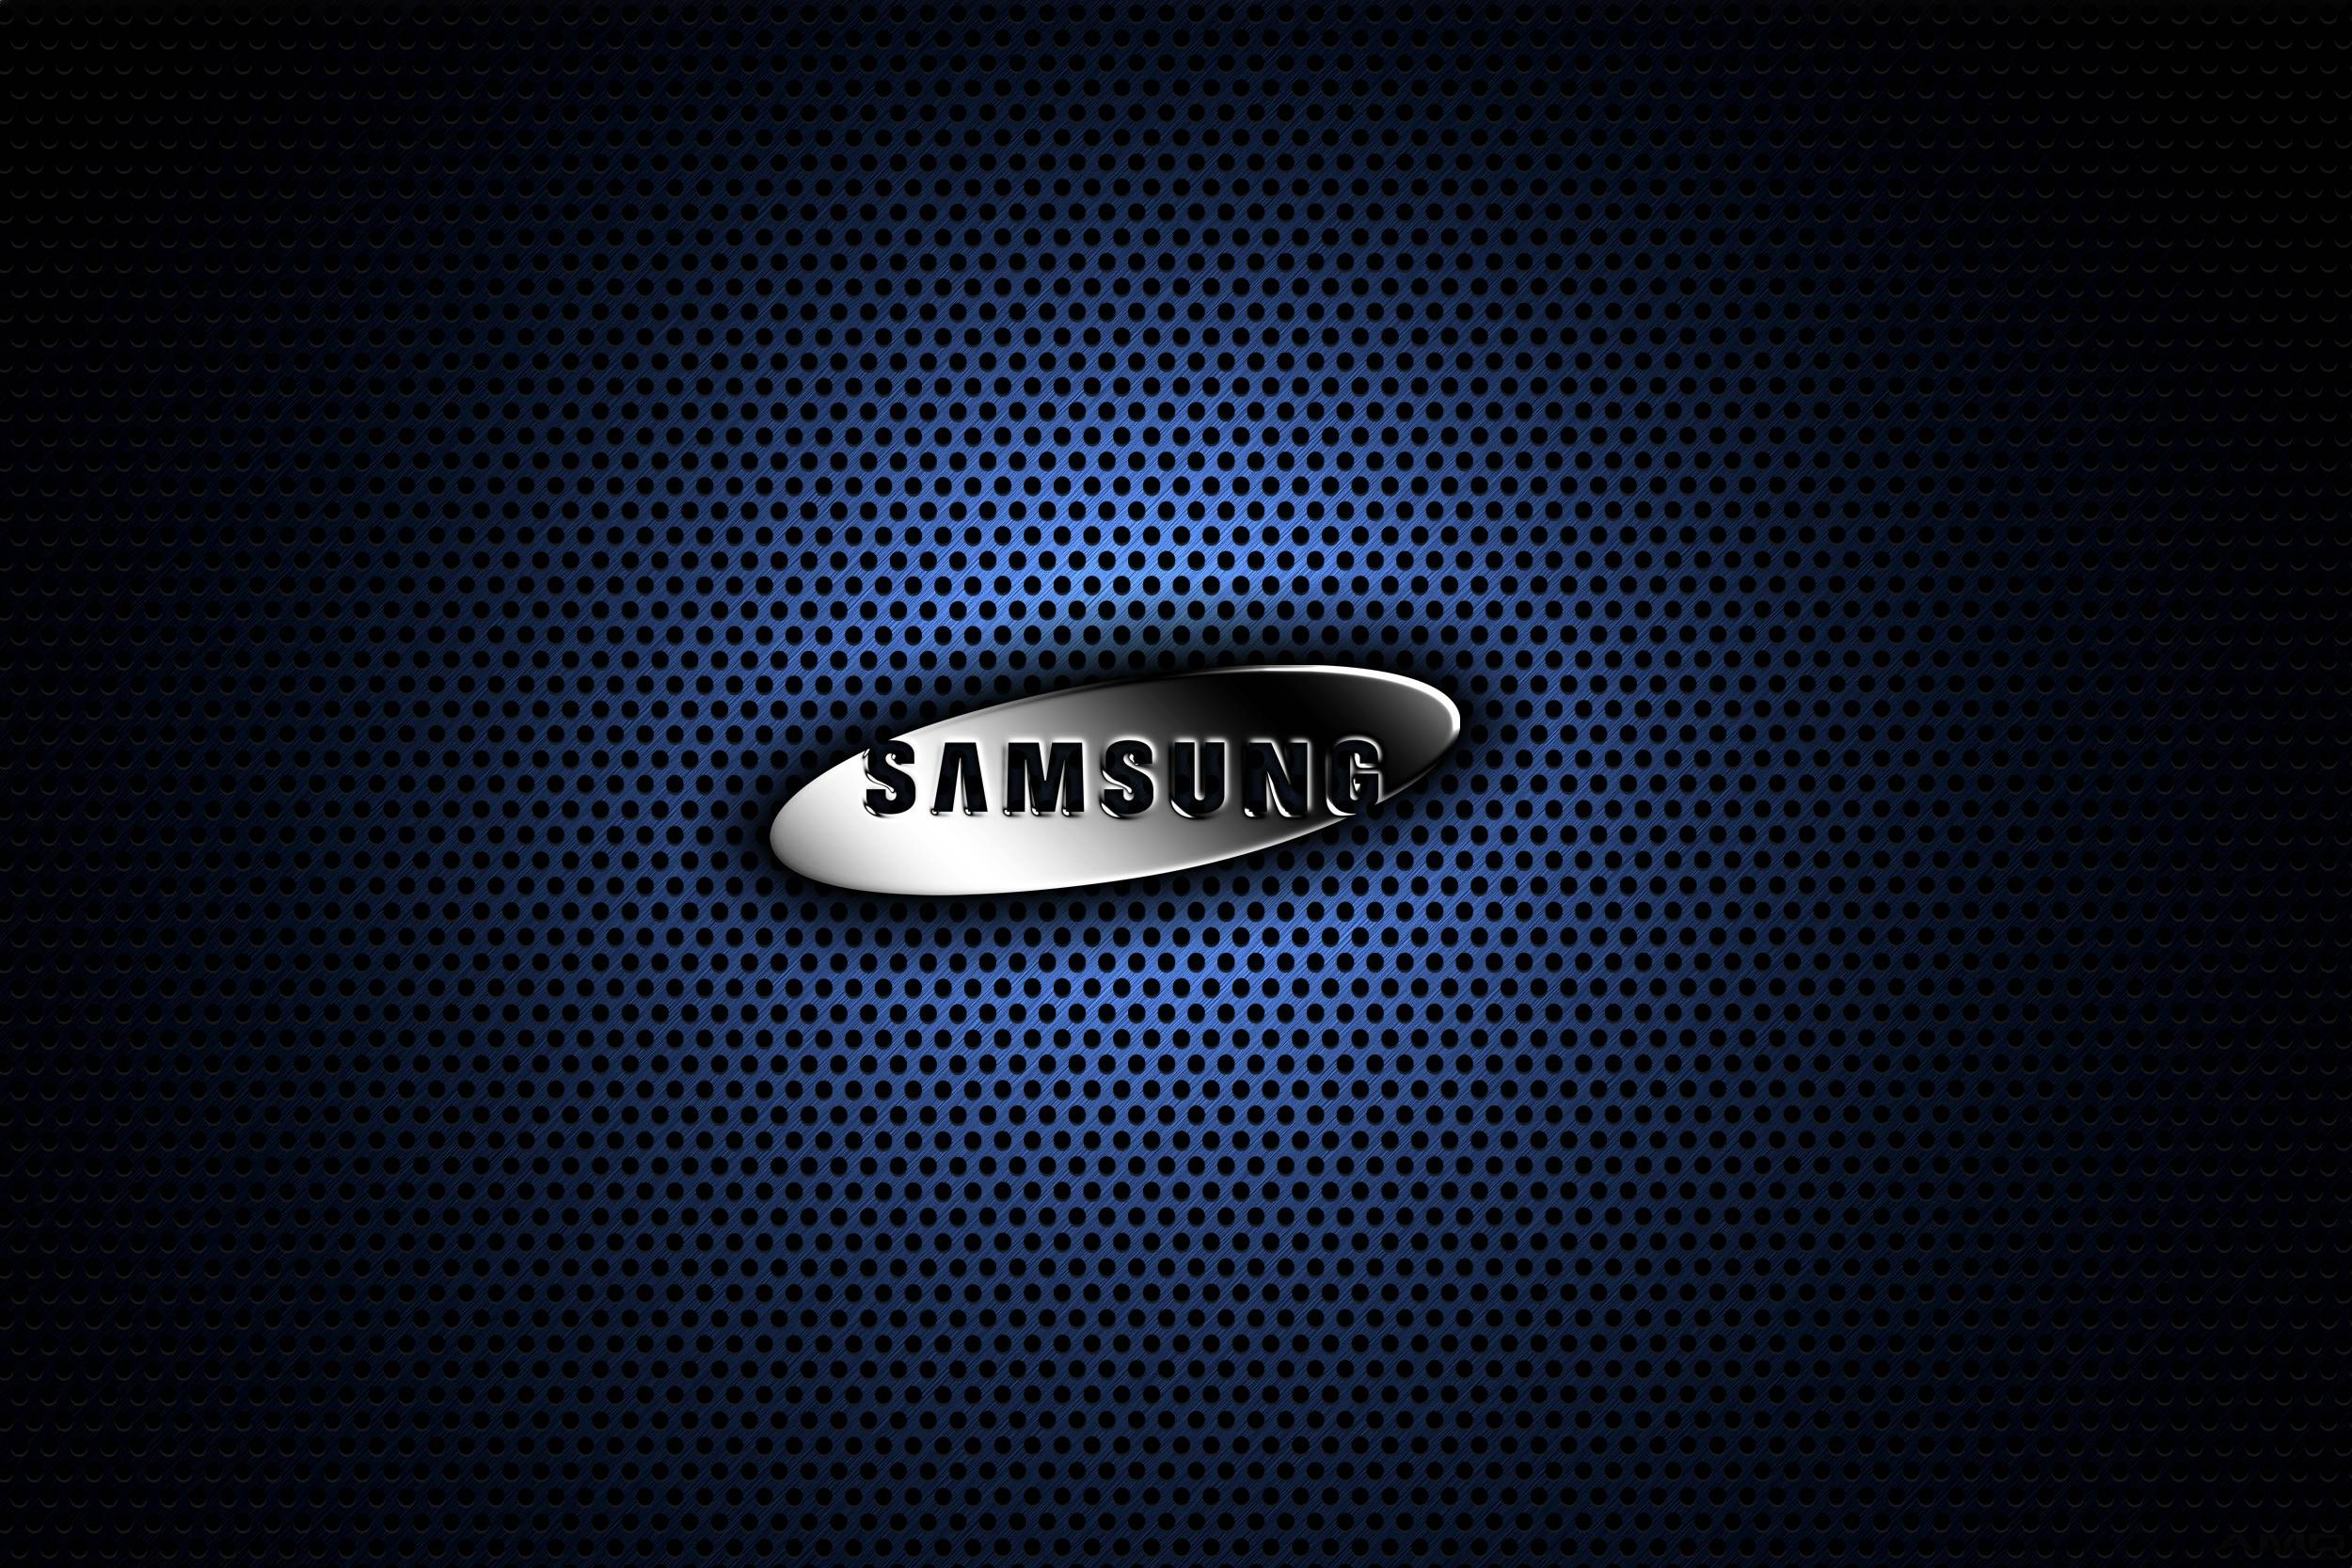 Samsung Full Hd Wallpapers Top Free Samsung Full Hd Backgrounds